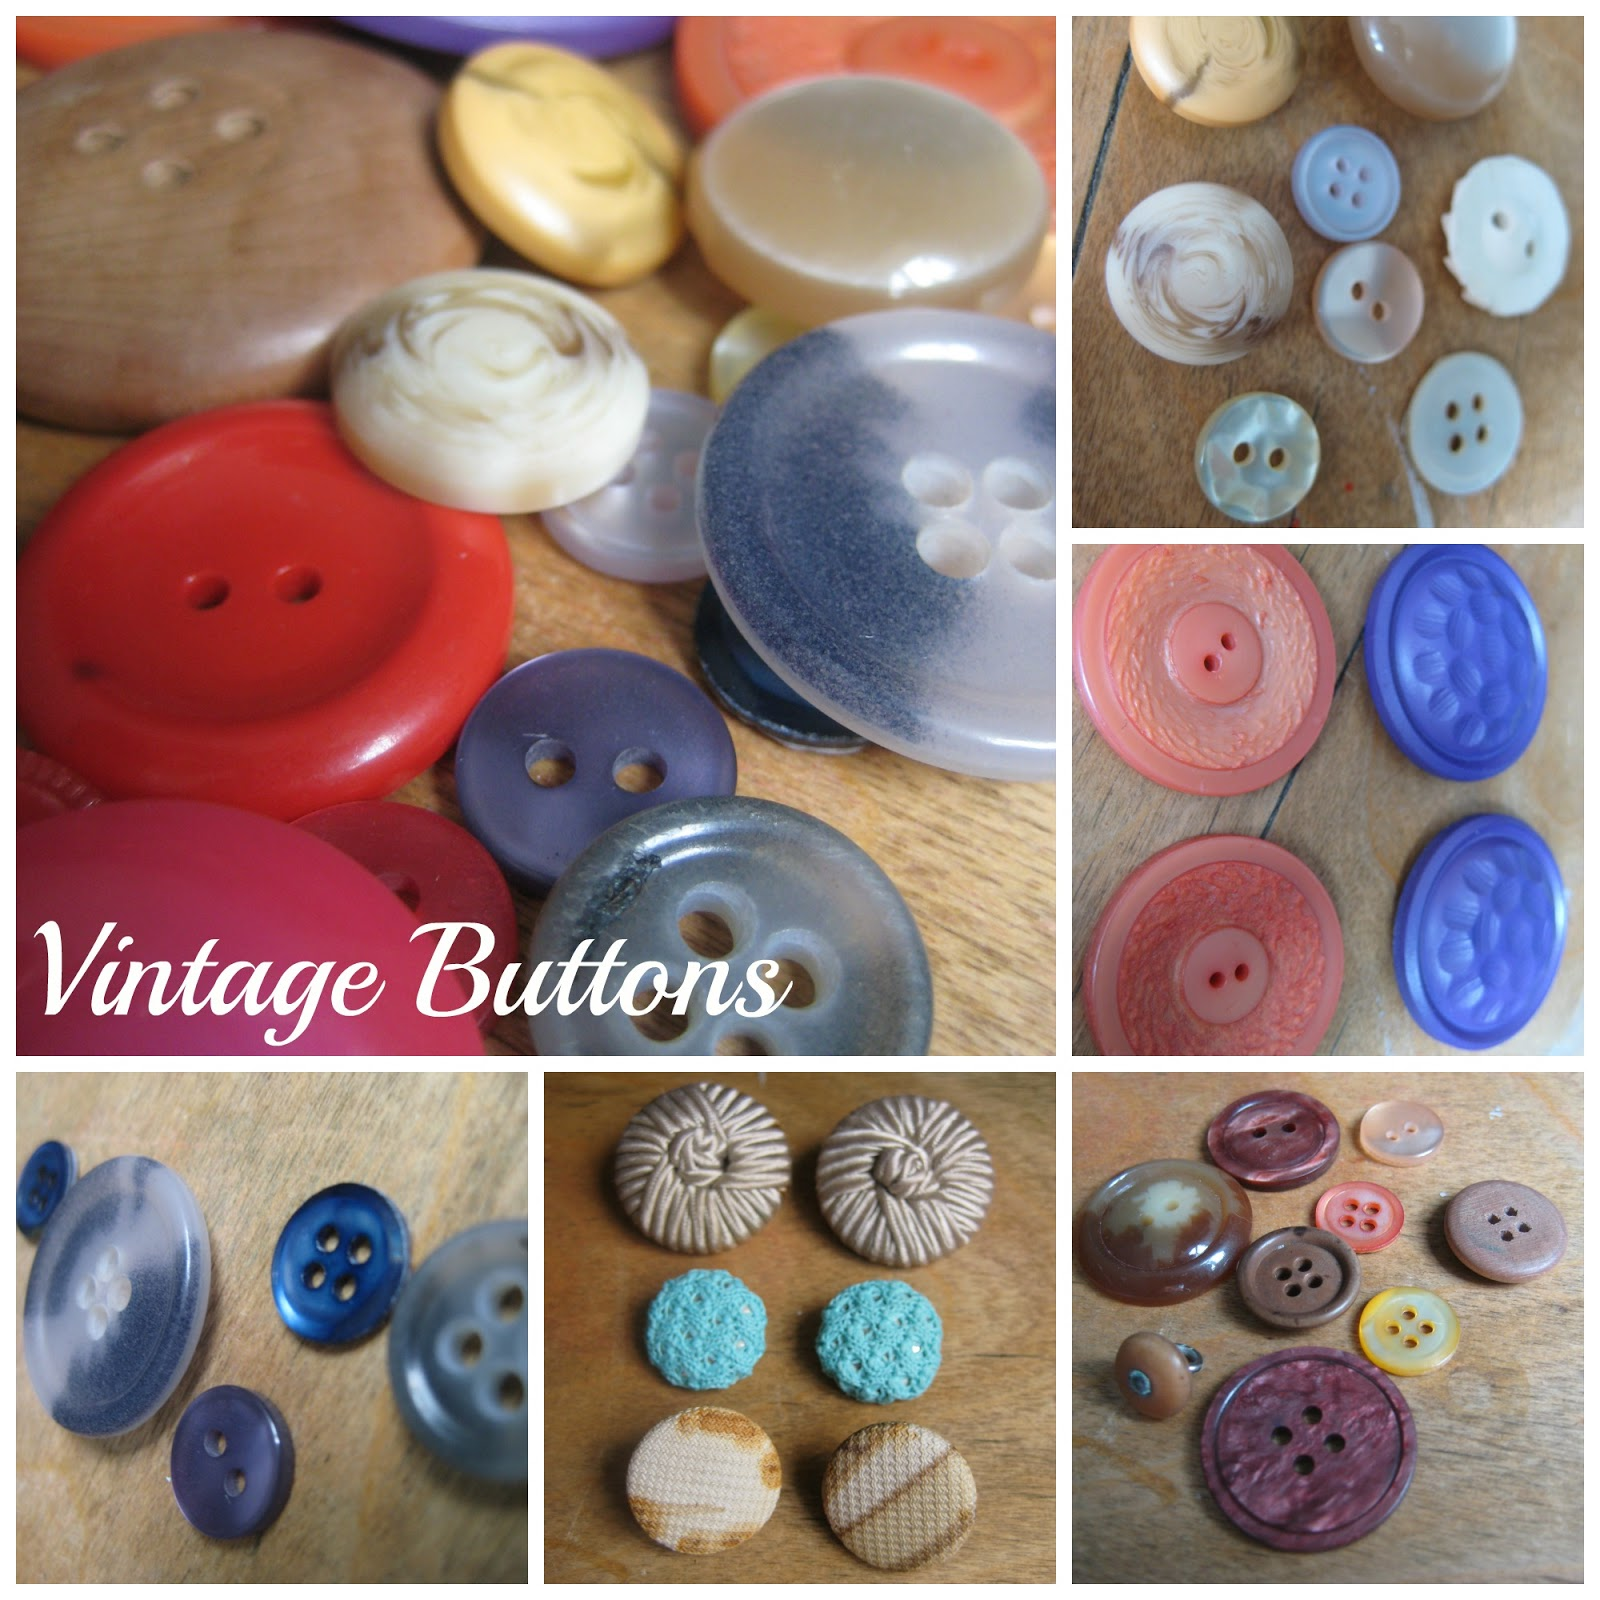 The Old Lady's Button Box